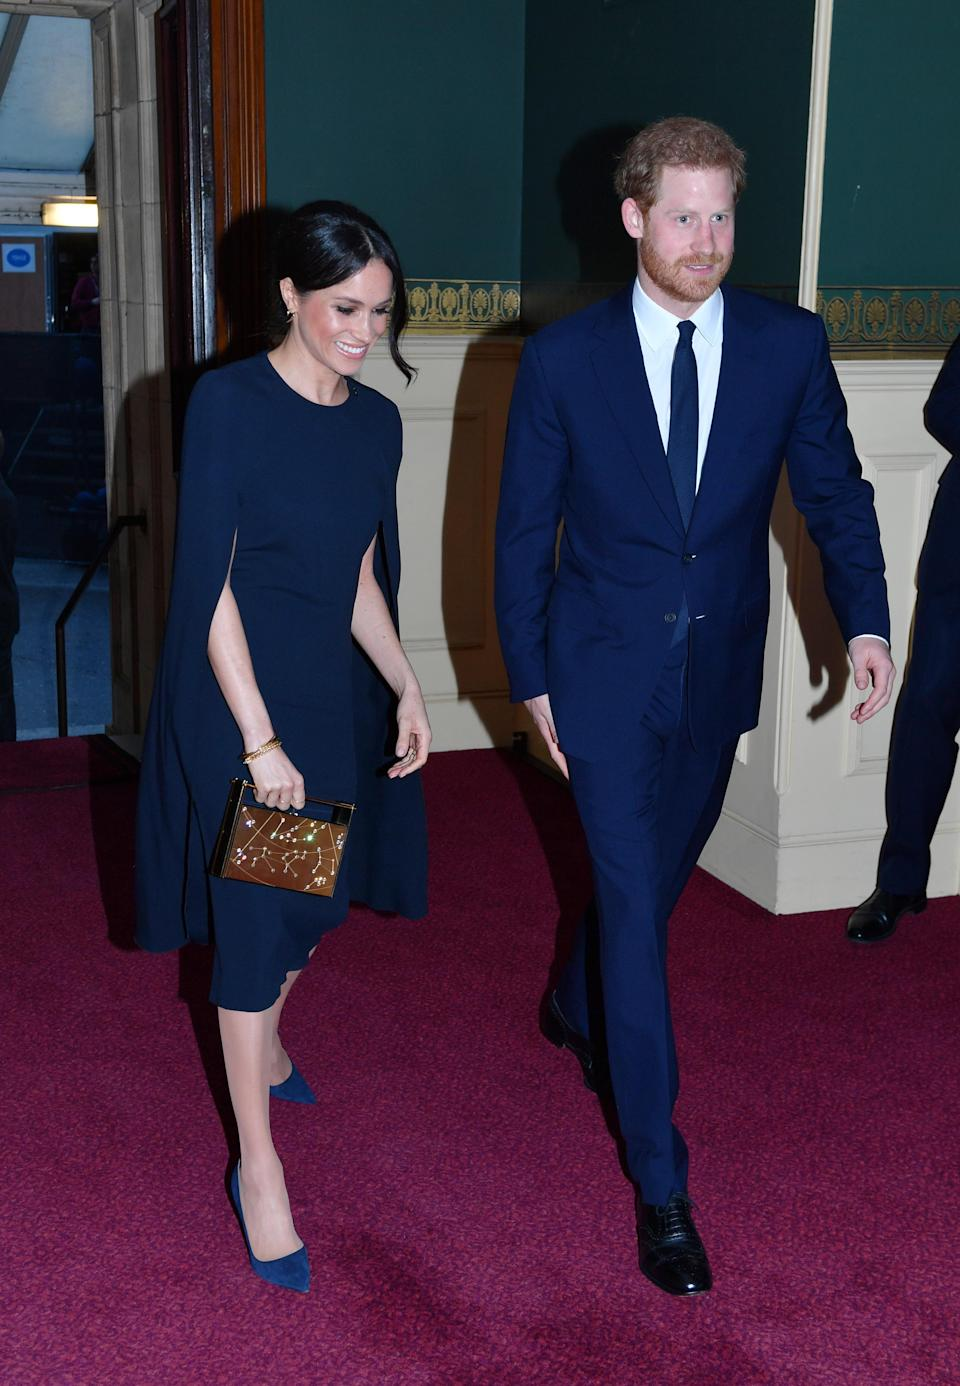 <p>The 36-year-old former actress stepped out two separate appearances on Saturday — and looked absolutely stunning at both.<br>On Saturday night, the 36-year-old wore a fashion-forward Stella McCartney cape dress to celebrate Queen Elizabeth II's 92nd birthday. The royal was joined by the rest of the royal family — minus Kate Middleton, who's just days away from her due date — for a concert honouring the Queen at Royal Albert Hall. </p>